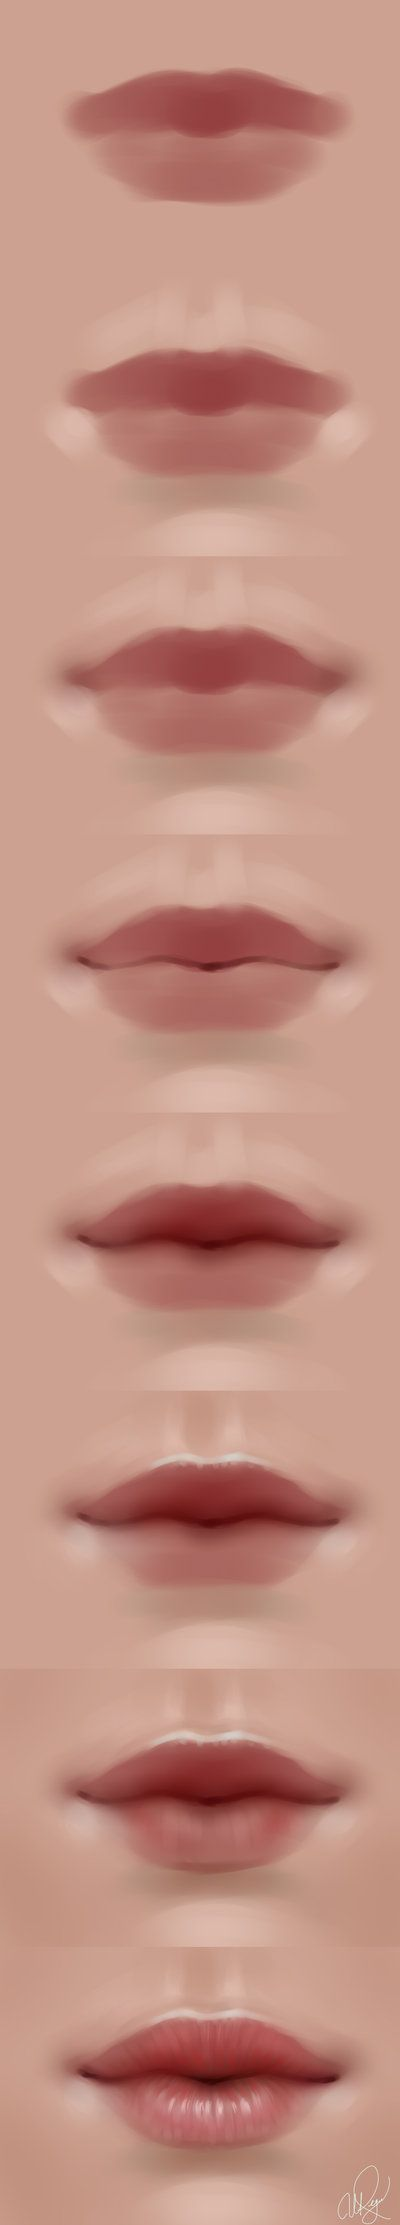 lips walkthrough by *Selenada on deviantART via cgpin.com